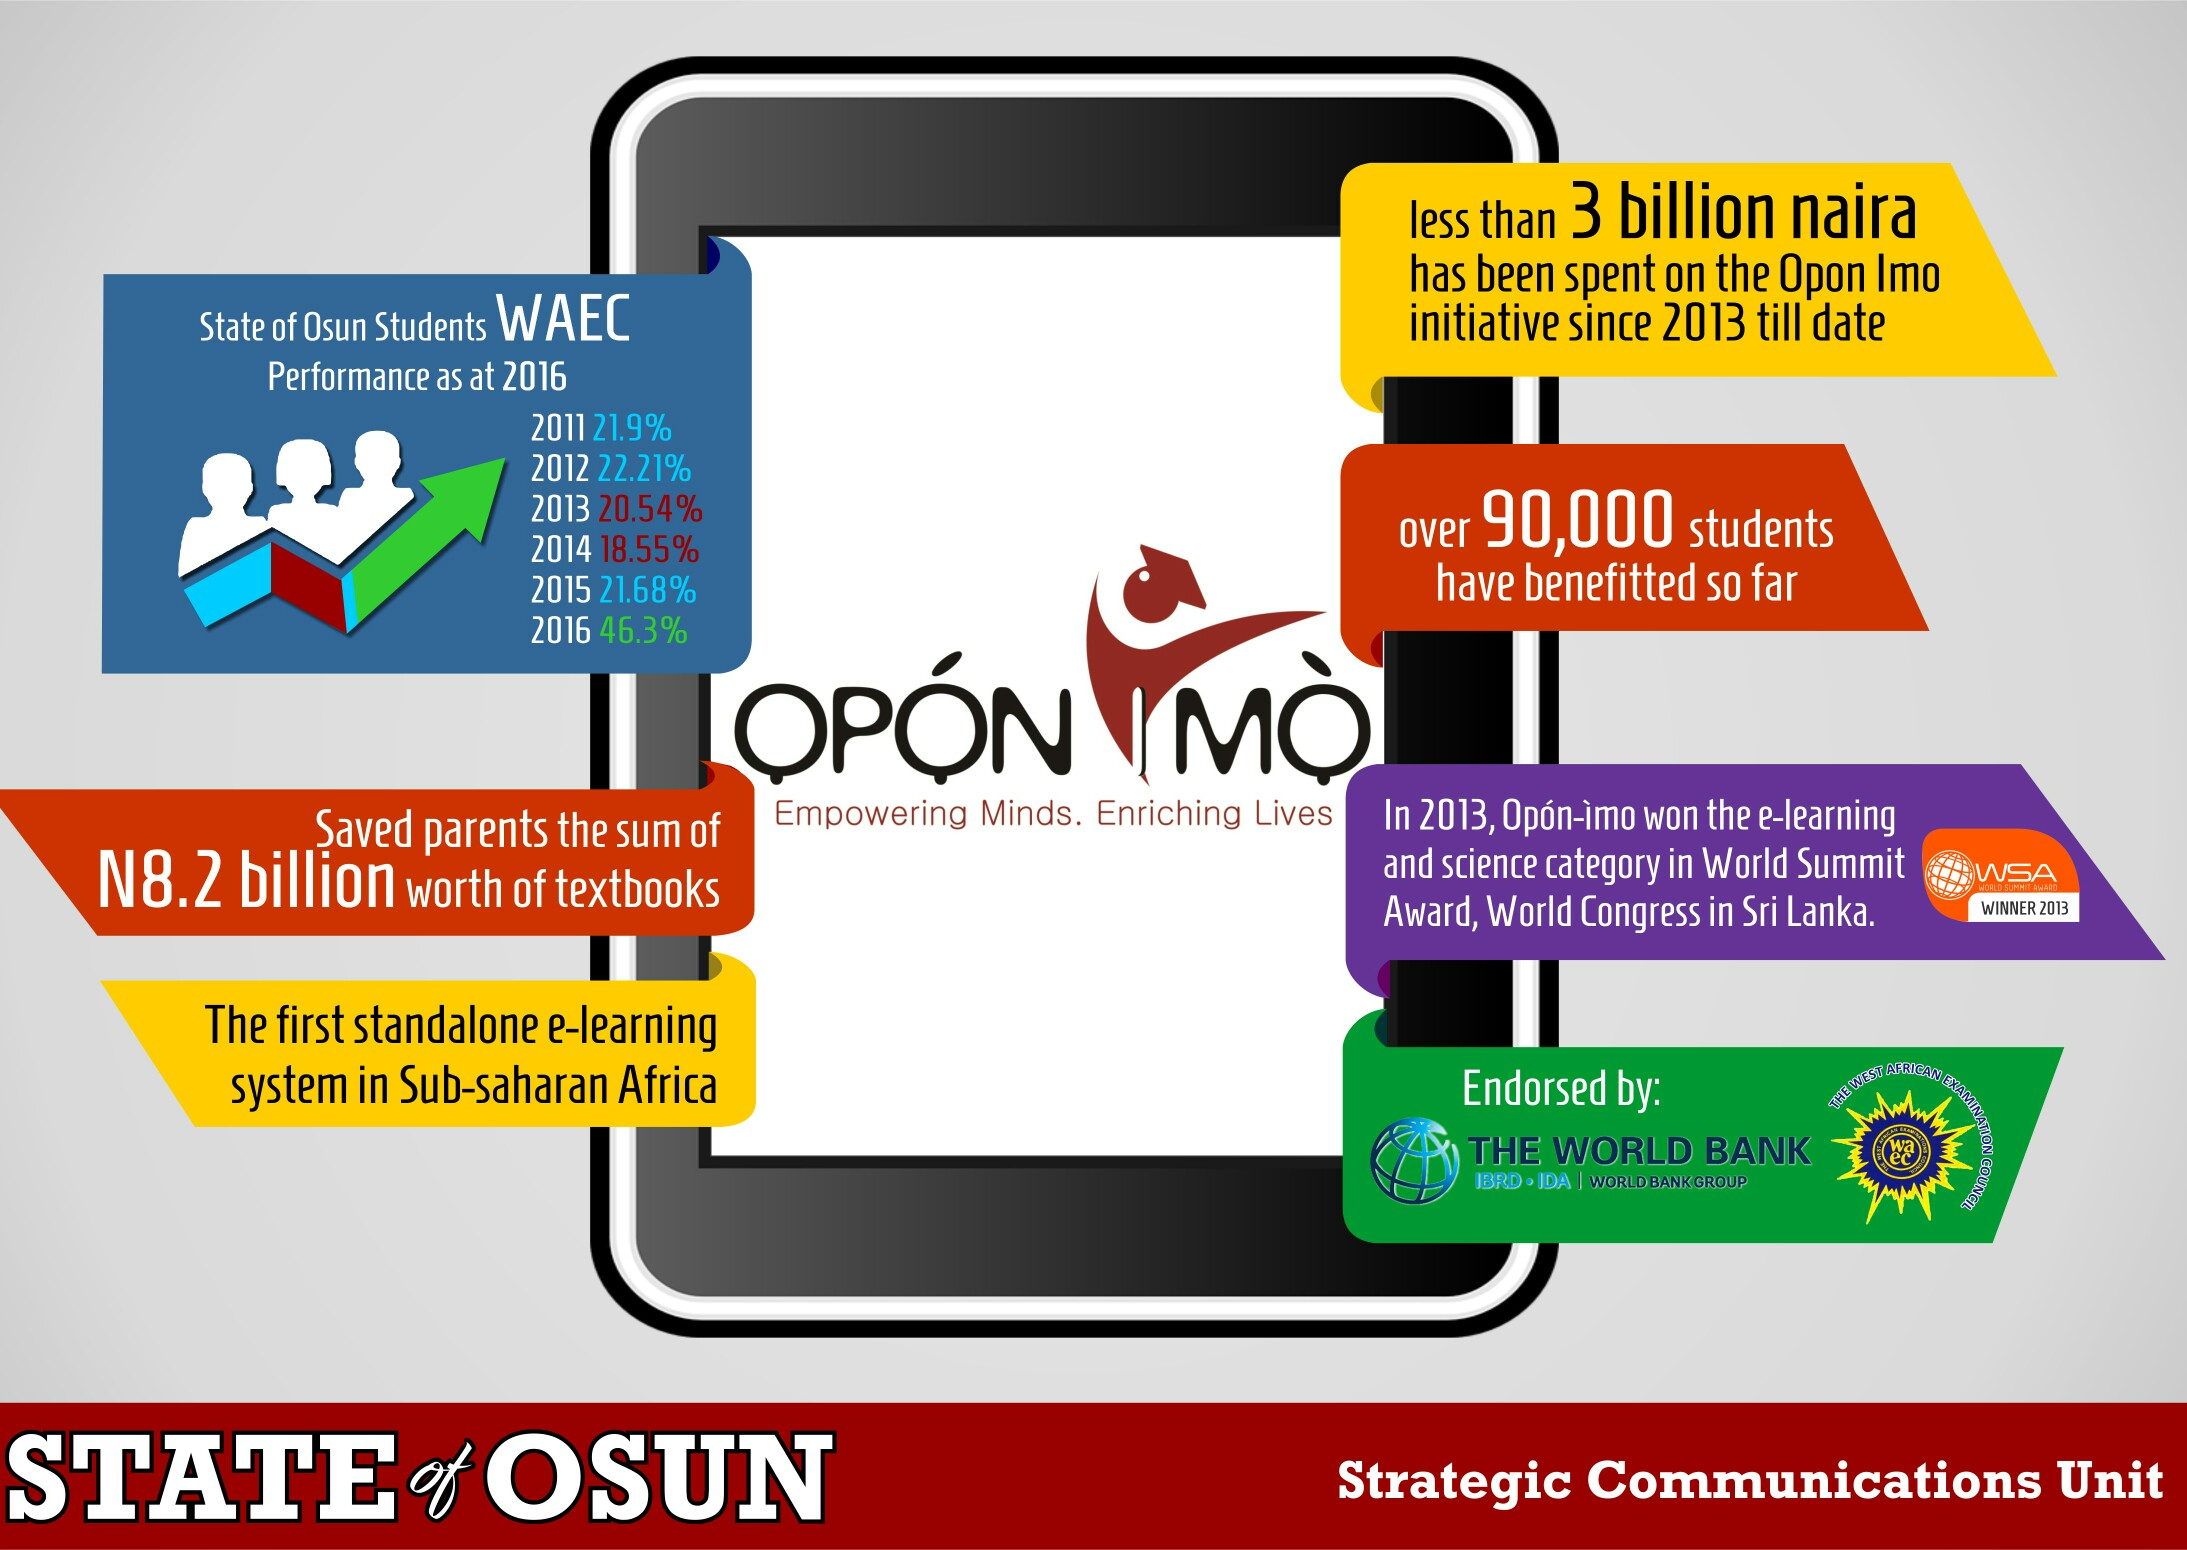 10 Things You Don't Know About 'Opon Imo'